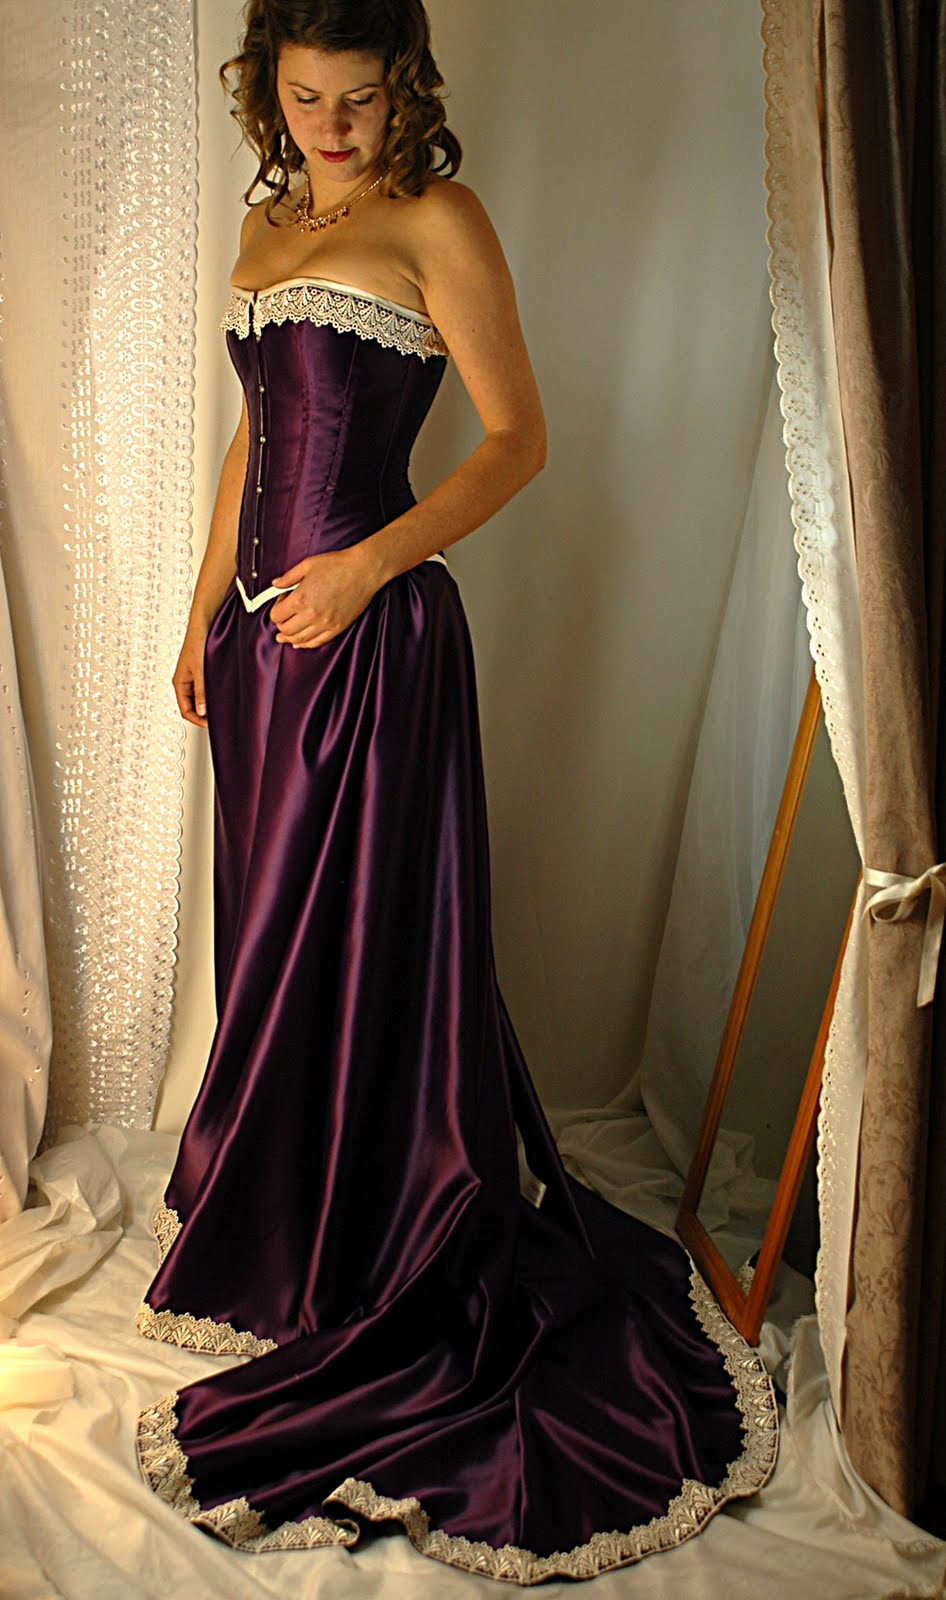 Cadbury Purple And Antiqued Ivory Steel Boned Corset Gown